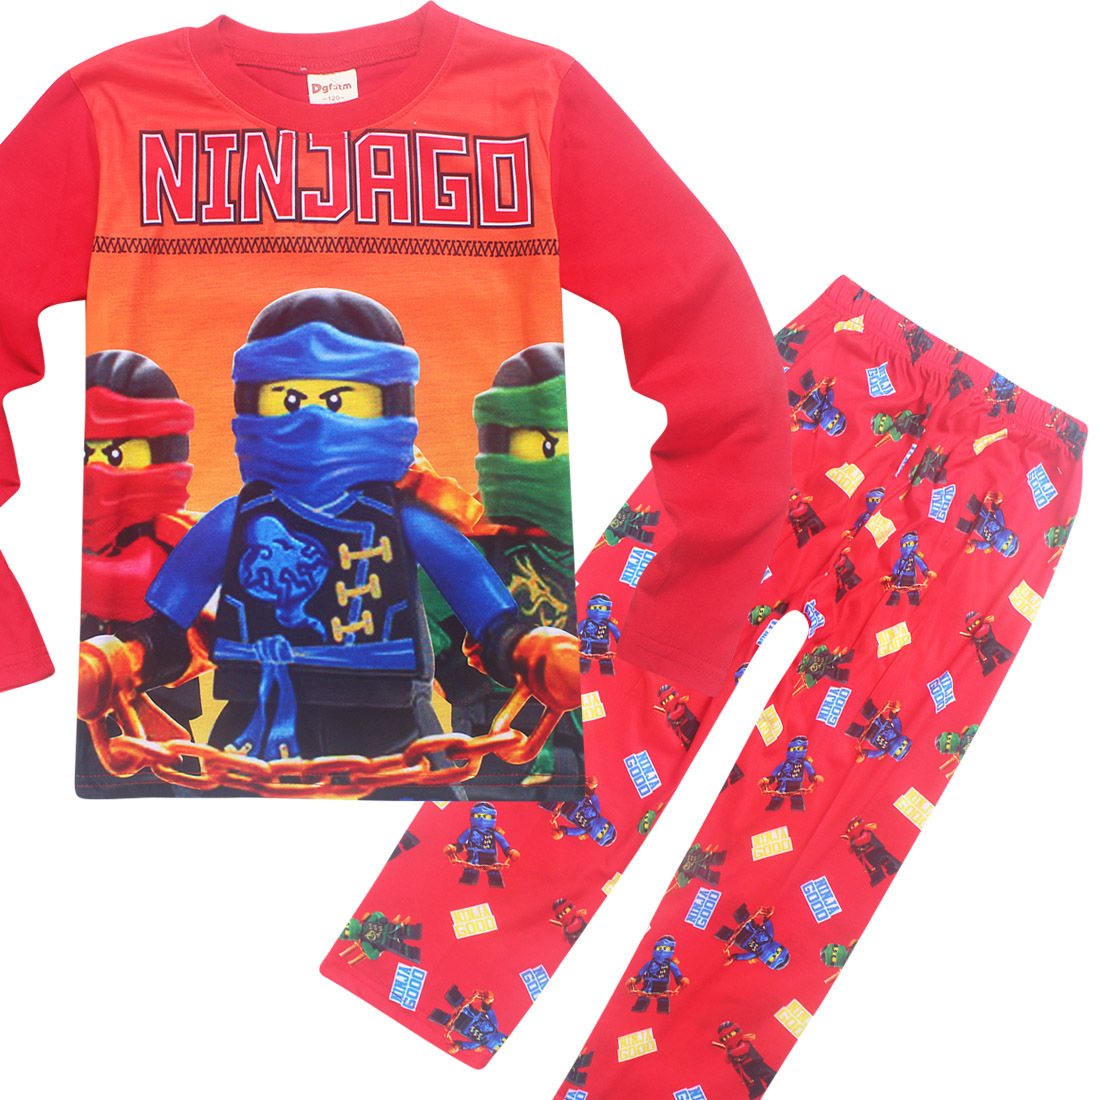 2018 New Kids Girls Ninjago Princess Pyjamas Sets Childrens Pajama Infantil Sleepwear Home Clothing Baby boys Spiderman clothes